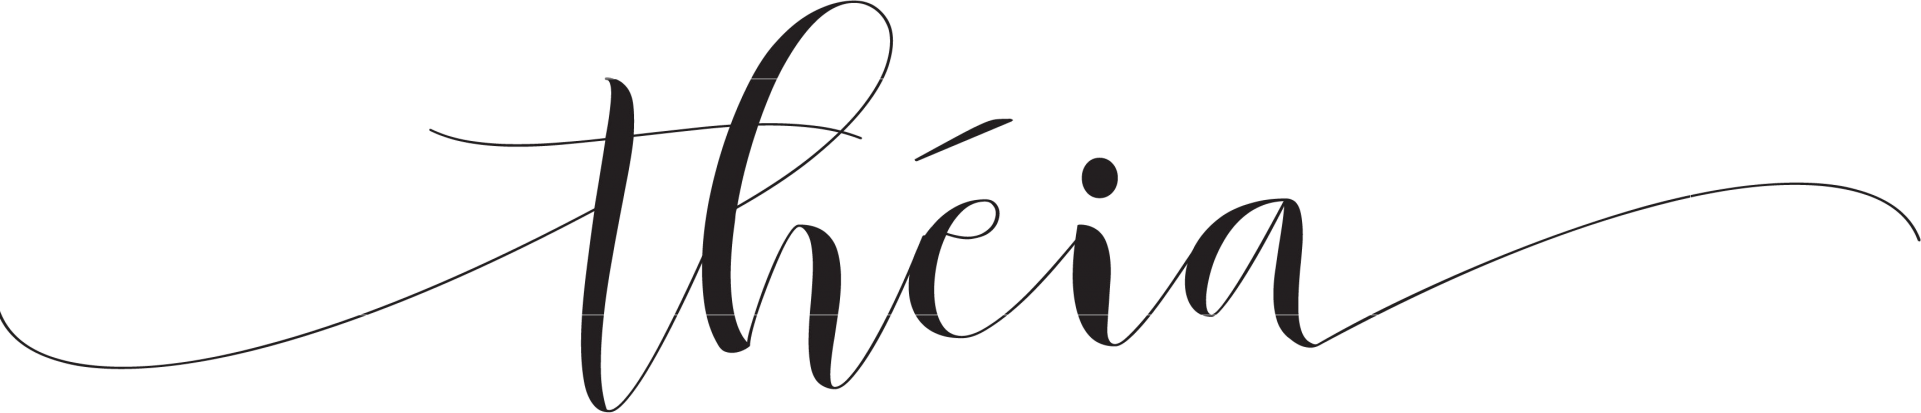 Need help to find out this font :)